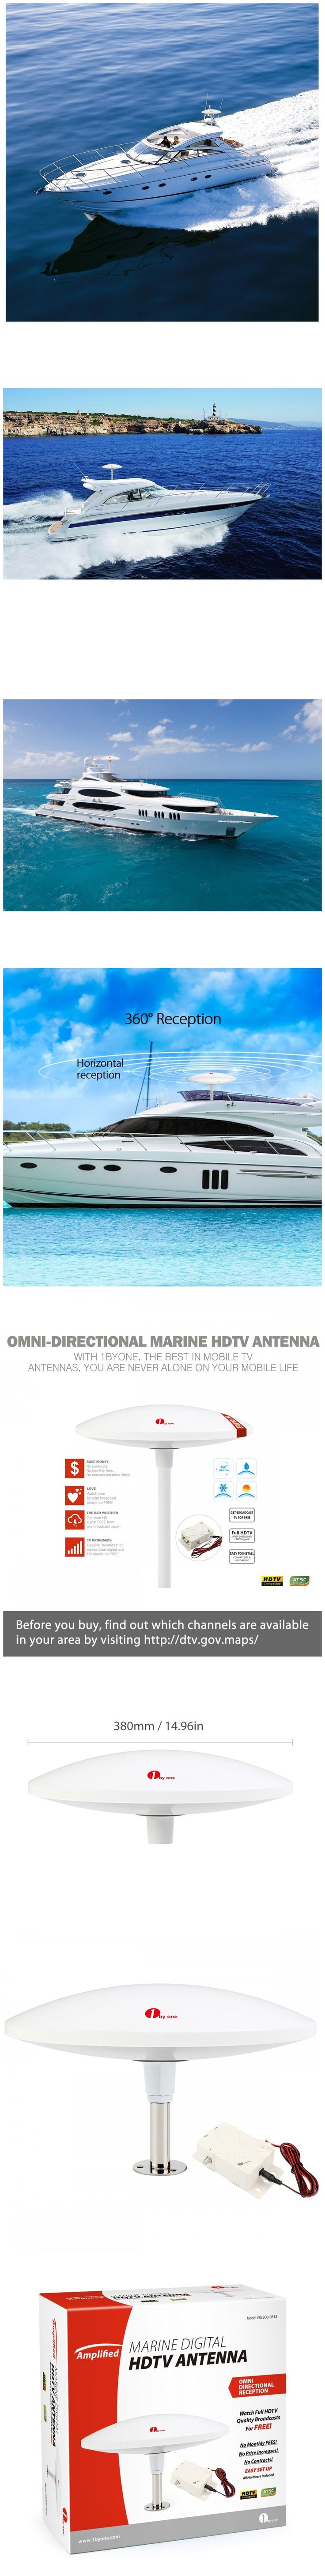 Only $102.99, 1byone Amplified Marine Antenna with Omni-directional 360° Reception, 70 Miles Outdoor HDTV Antenna Boat Antenna with Stainless Steel Base, Suitable for Outdoor and Marine, Anti-UV Coating ,Compact